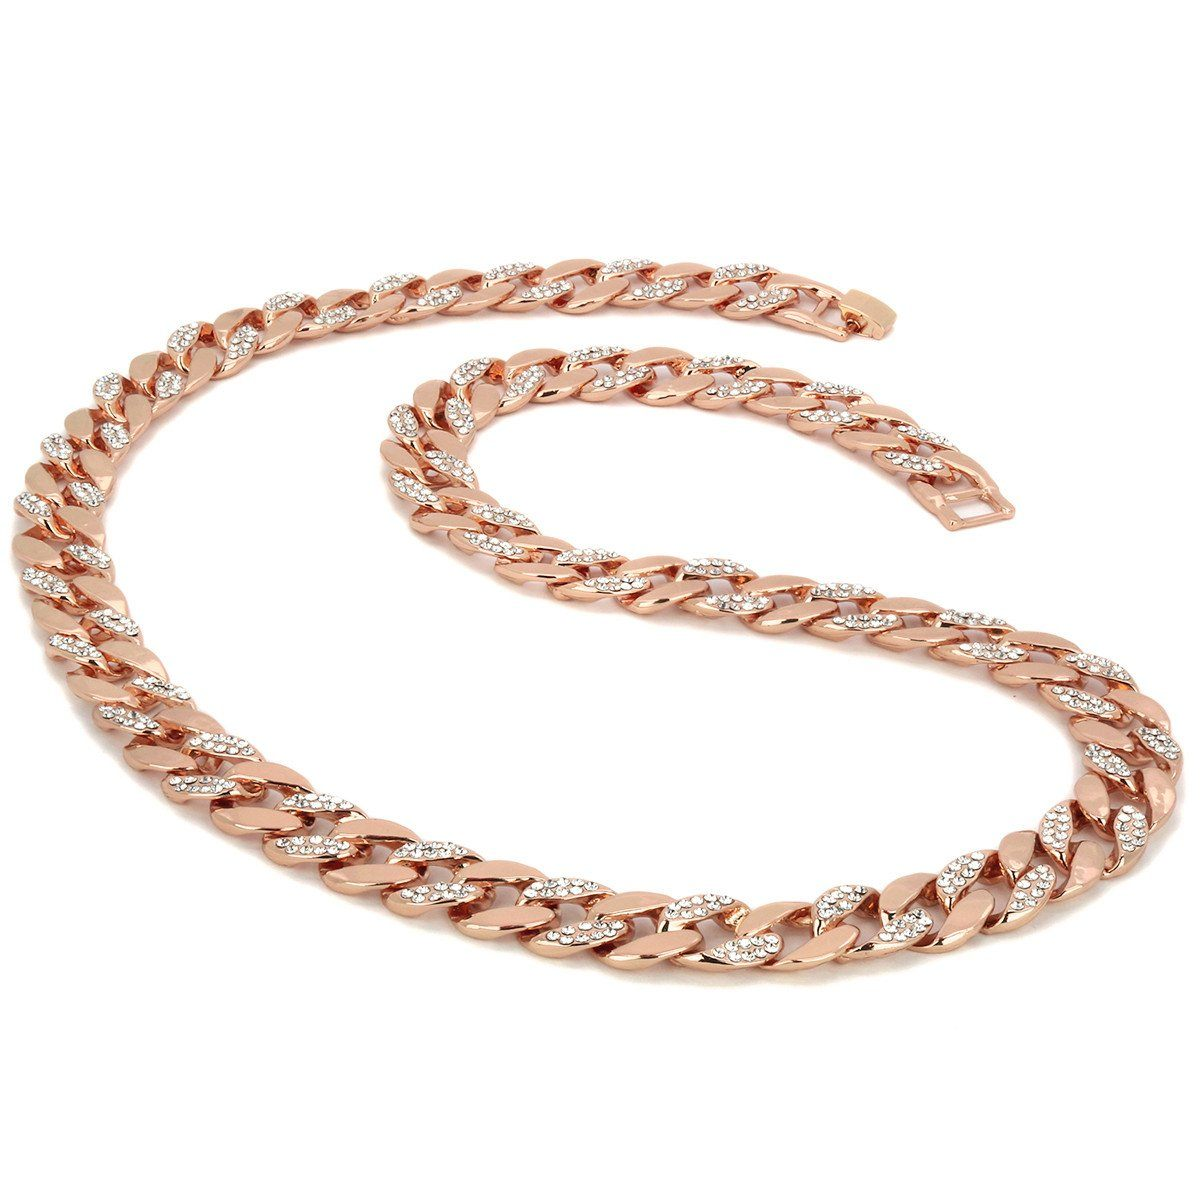 "Rose Gold Plated Cuban Half Cz Chain Necklace 15mm 30"" Inches"